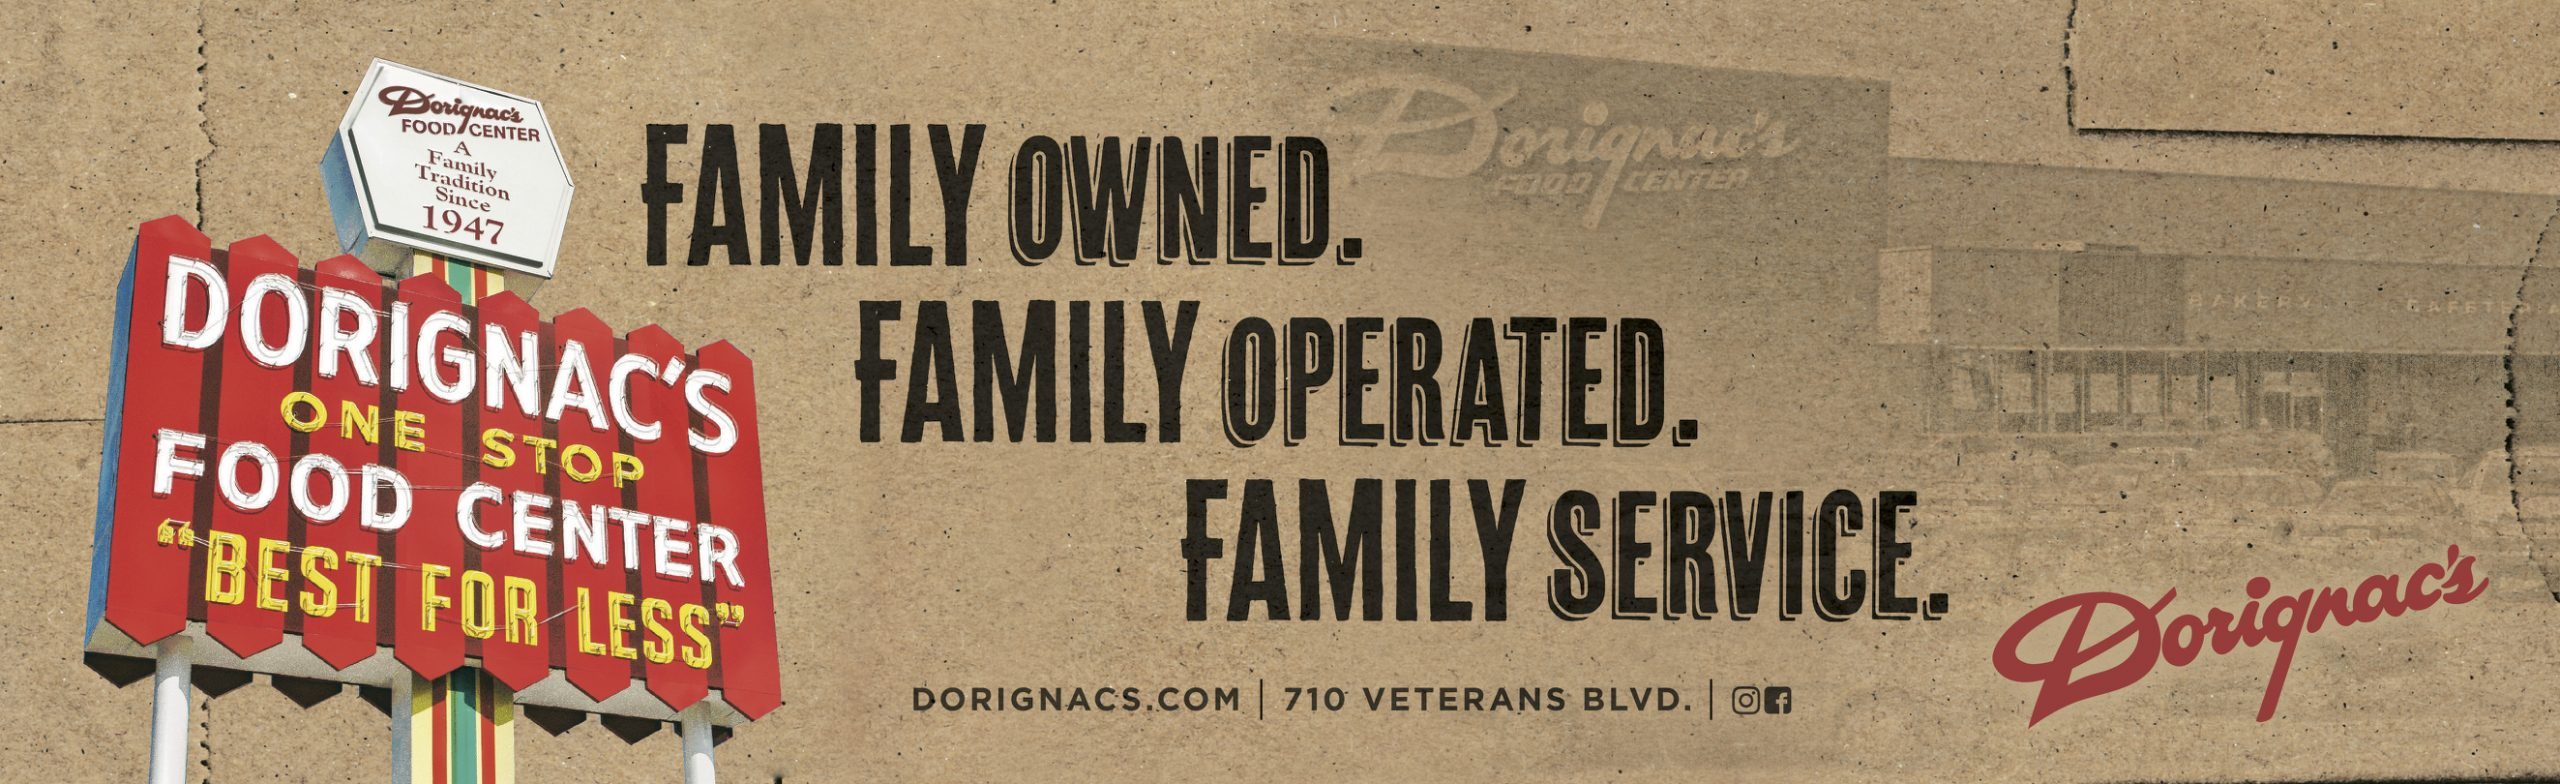 Family Owned. Family Operated.